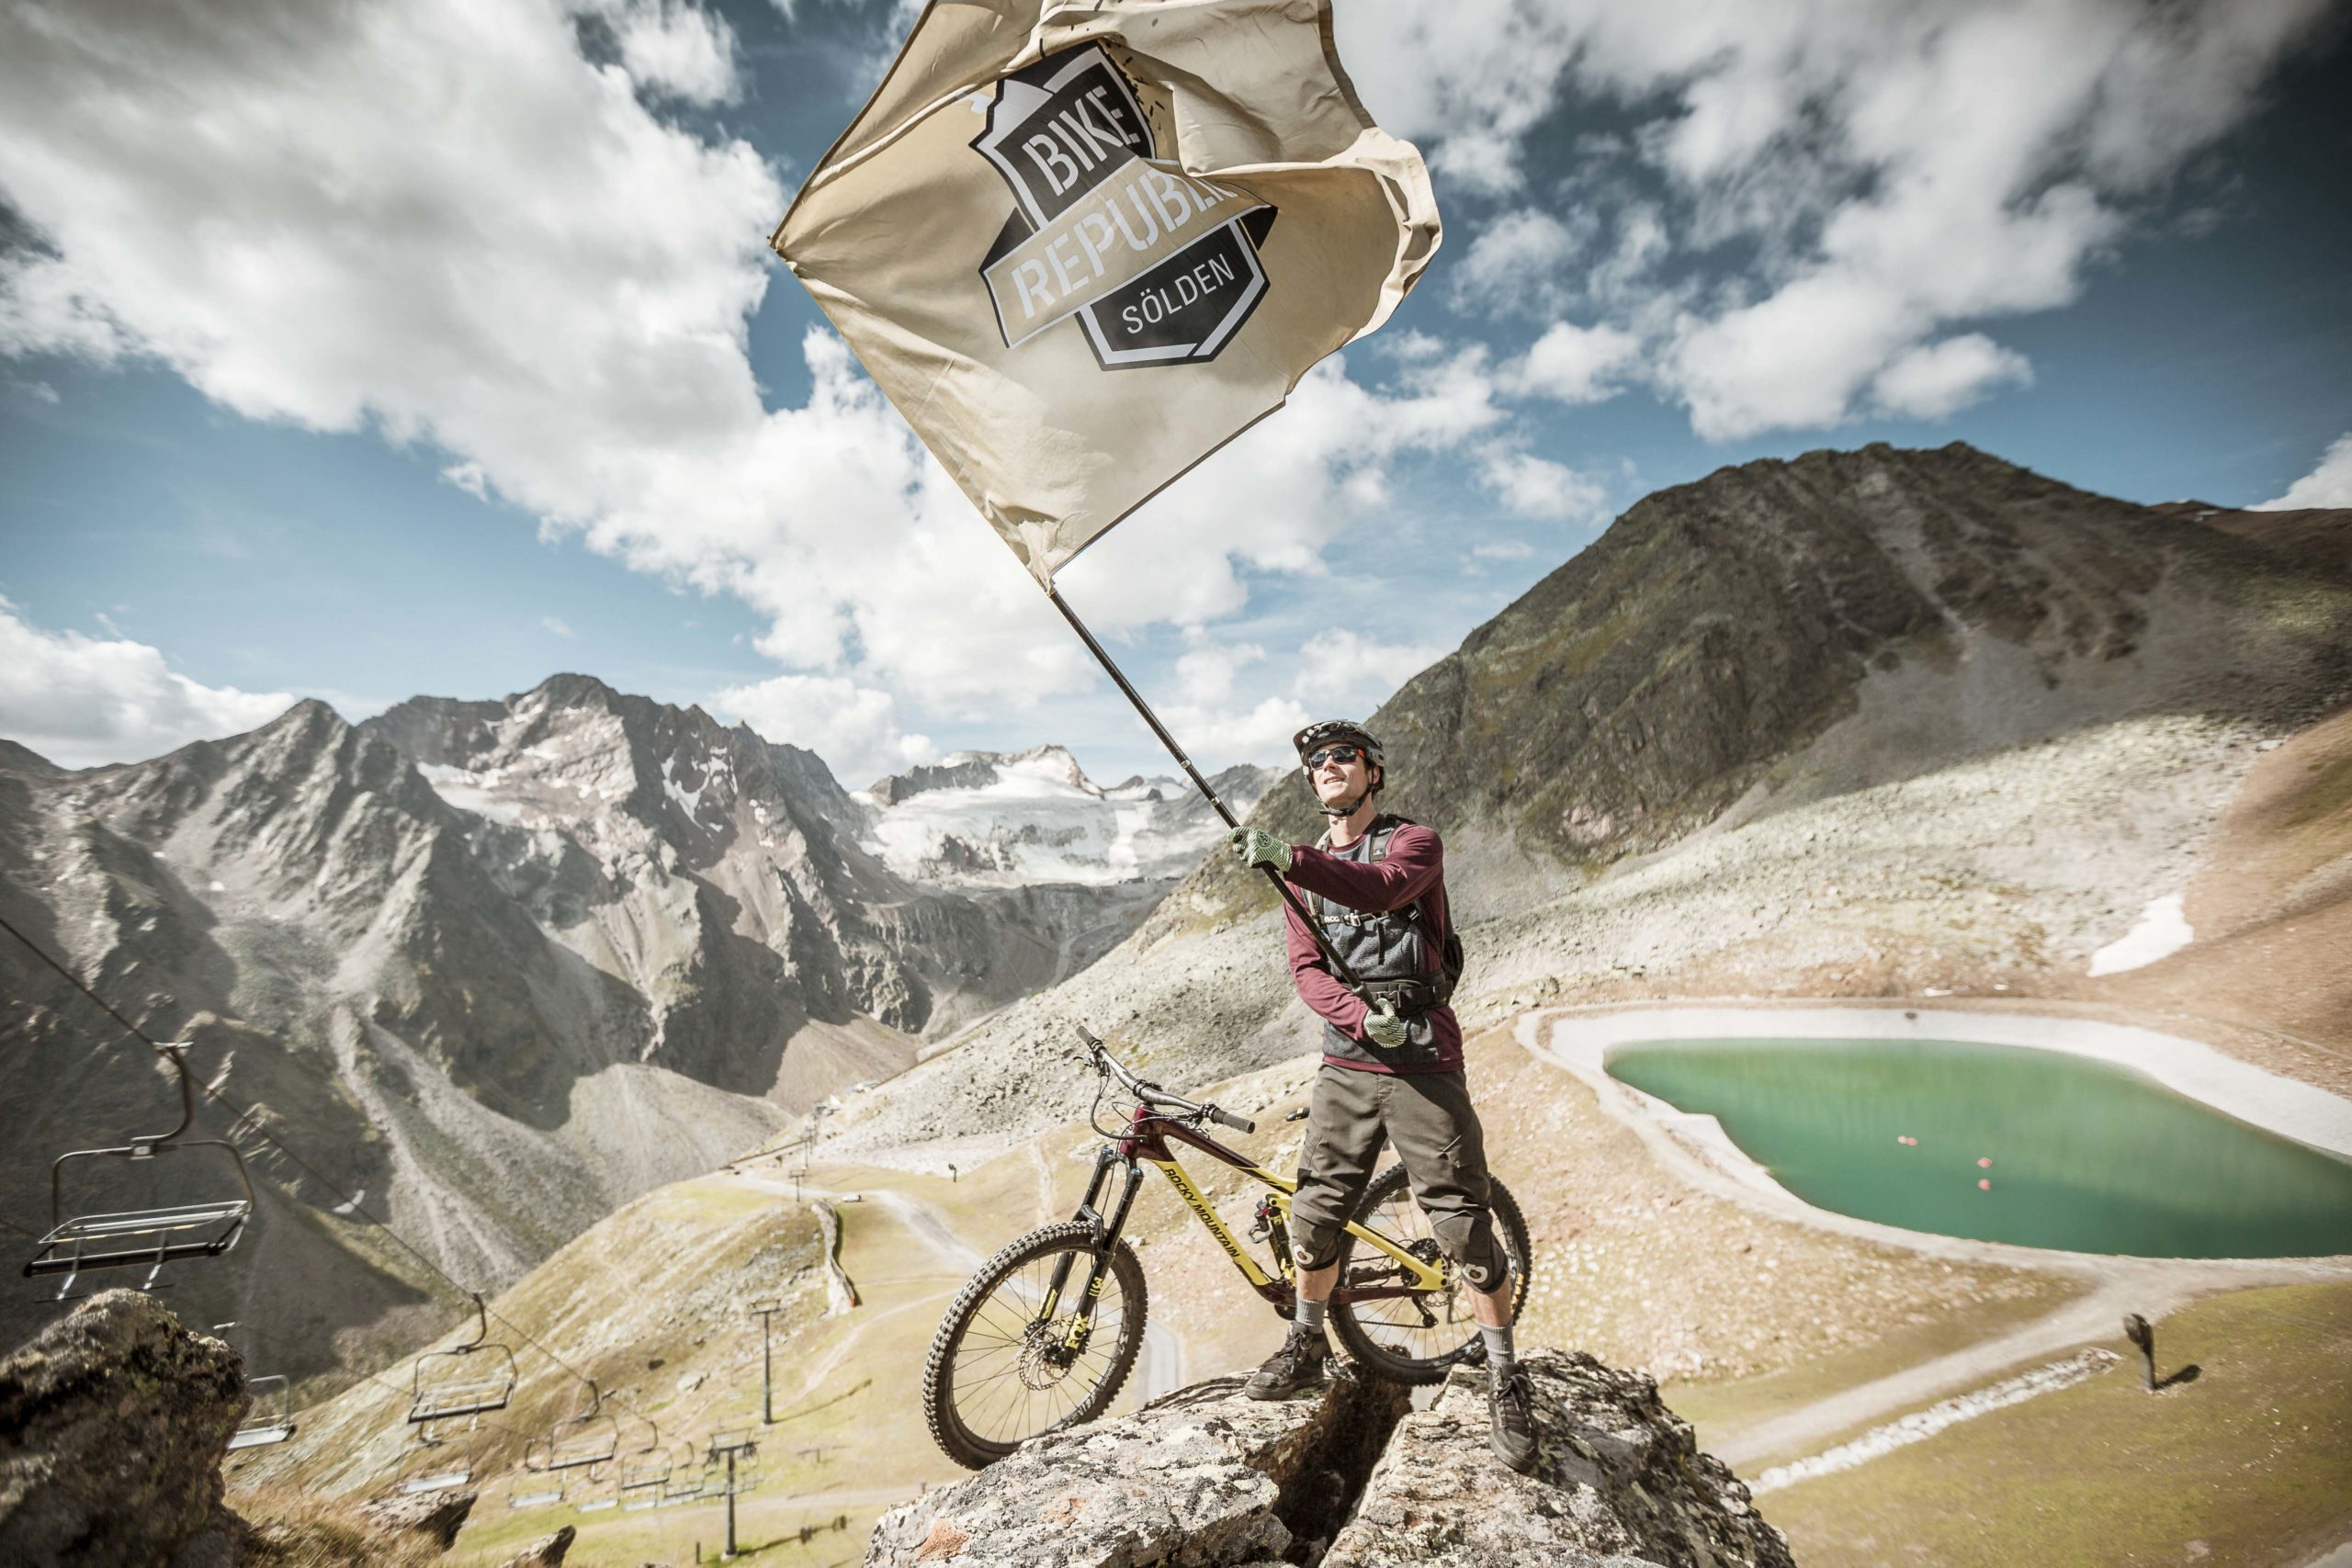 Bike Republic Sölden nationalfeiertag ©Ötztal Tourismus Rudi Wyhlida scaled